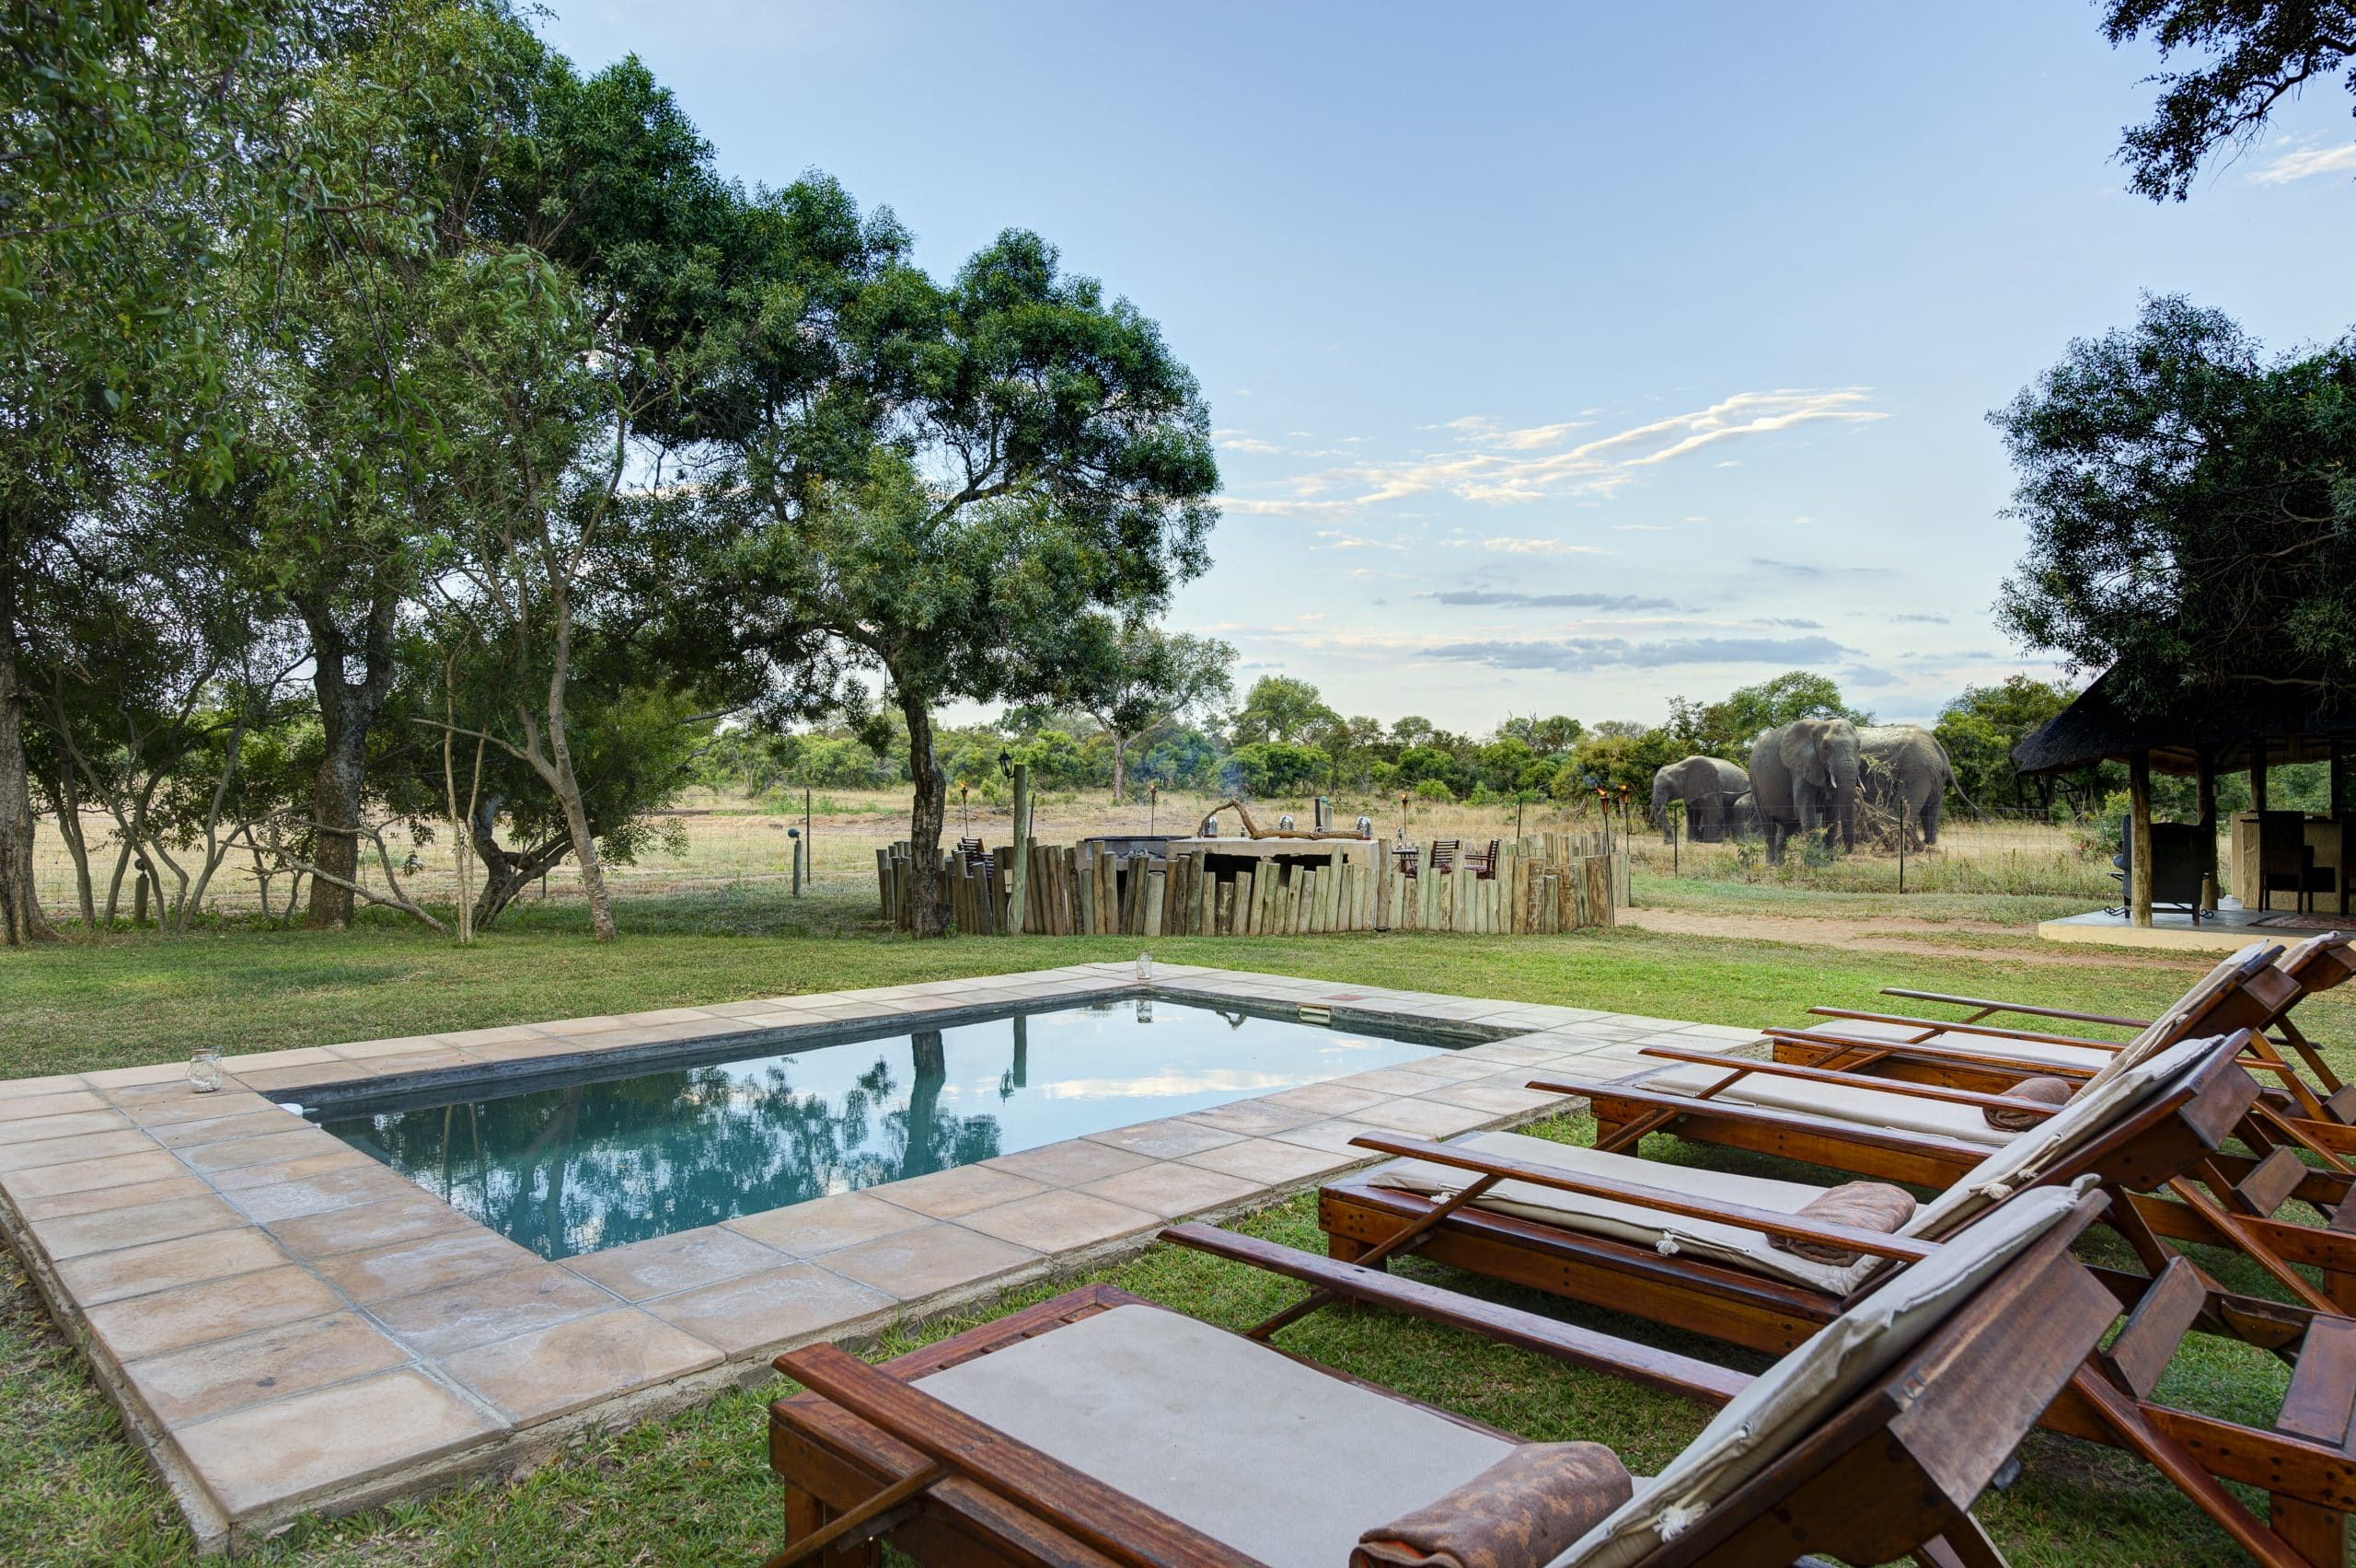 Swimming pool and gardens at Tintswalo